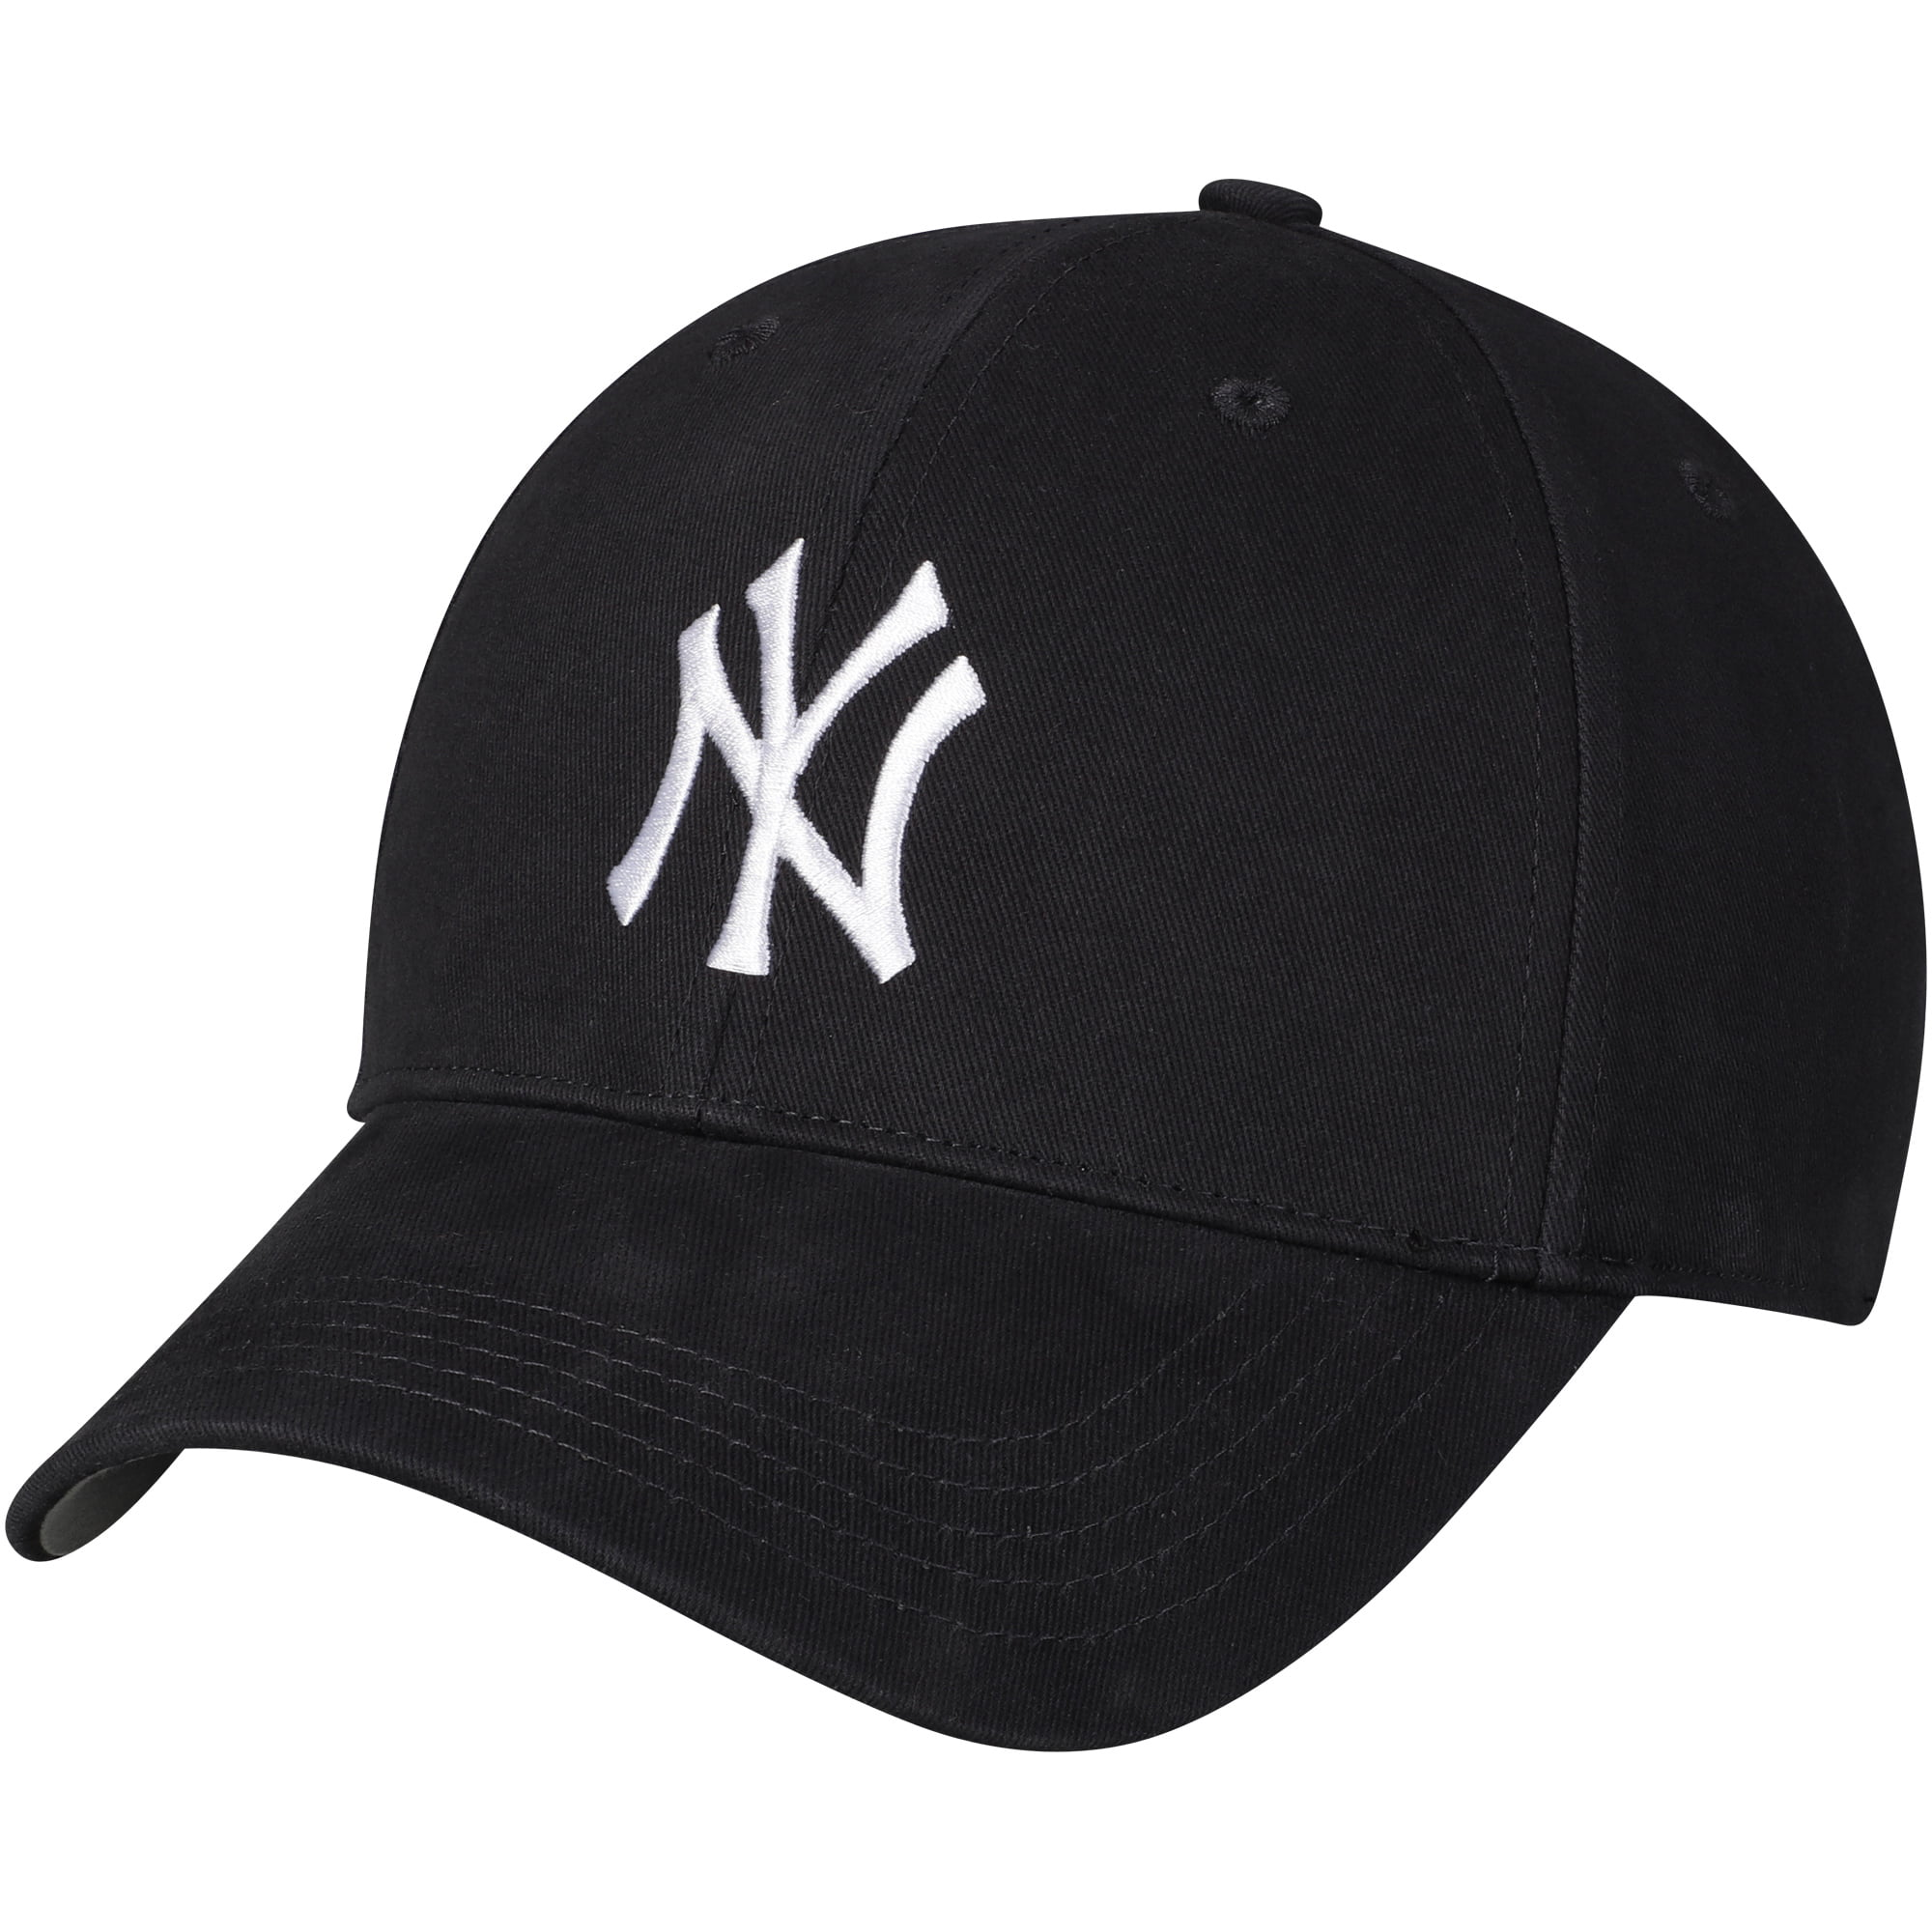 New York Yankees '47 Youth Basic Adjustable Hat Navy OSFA by TWINS ENTERPRISE INC/47 BRAND